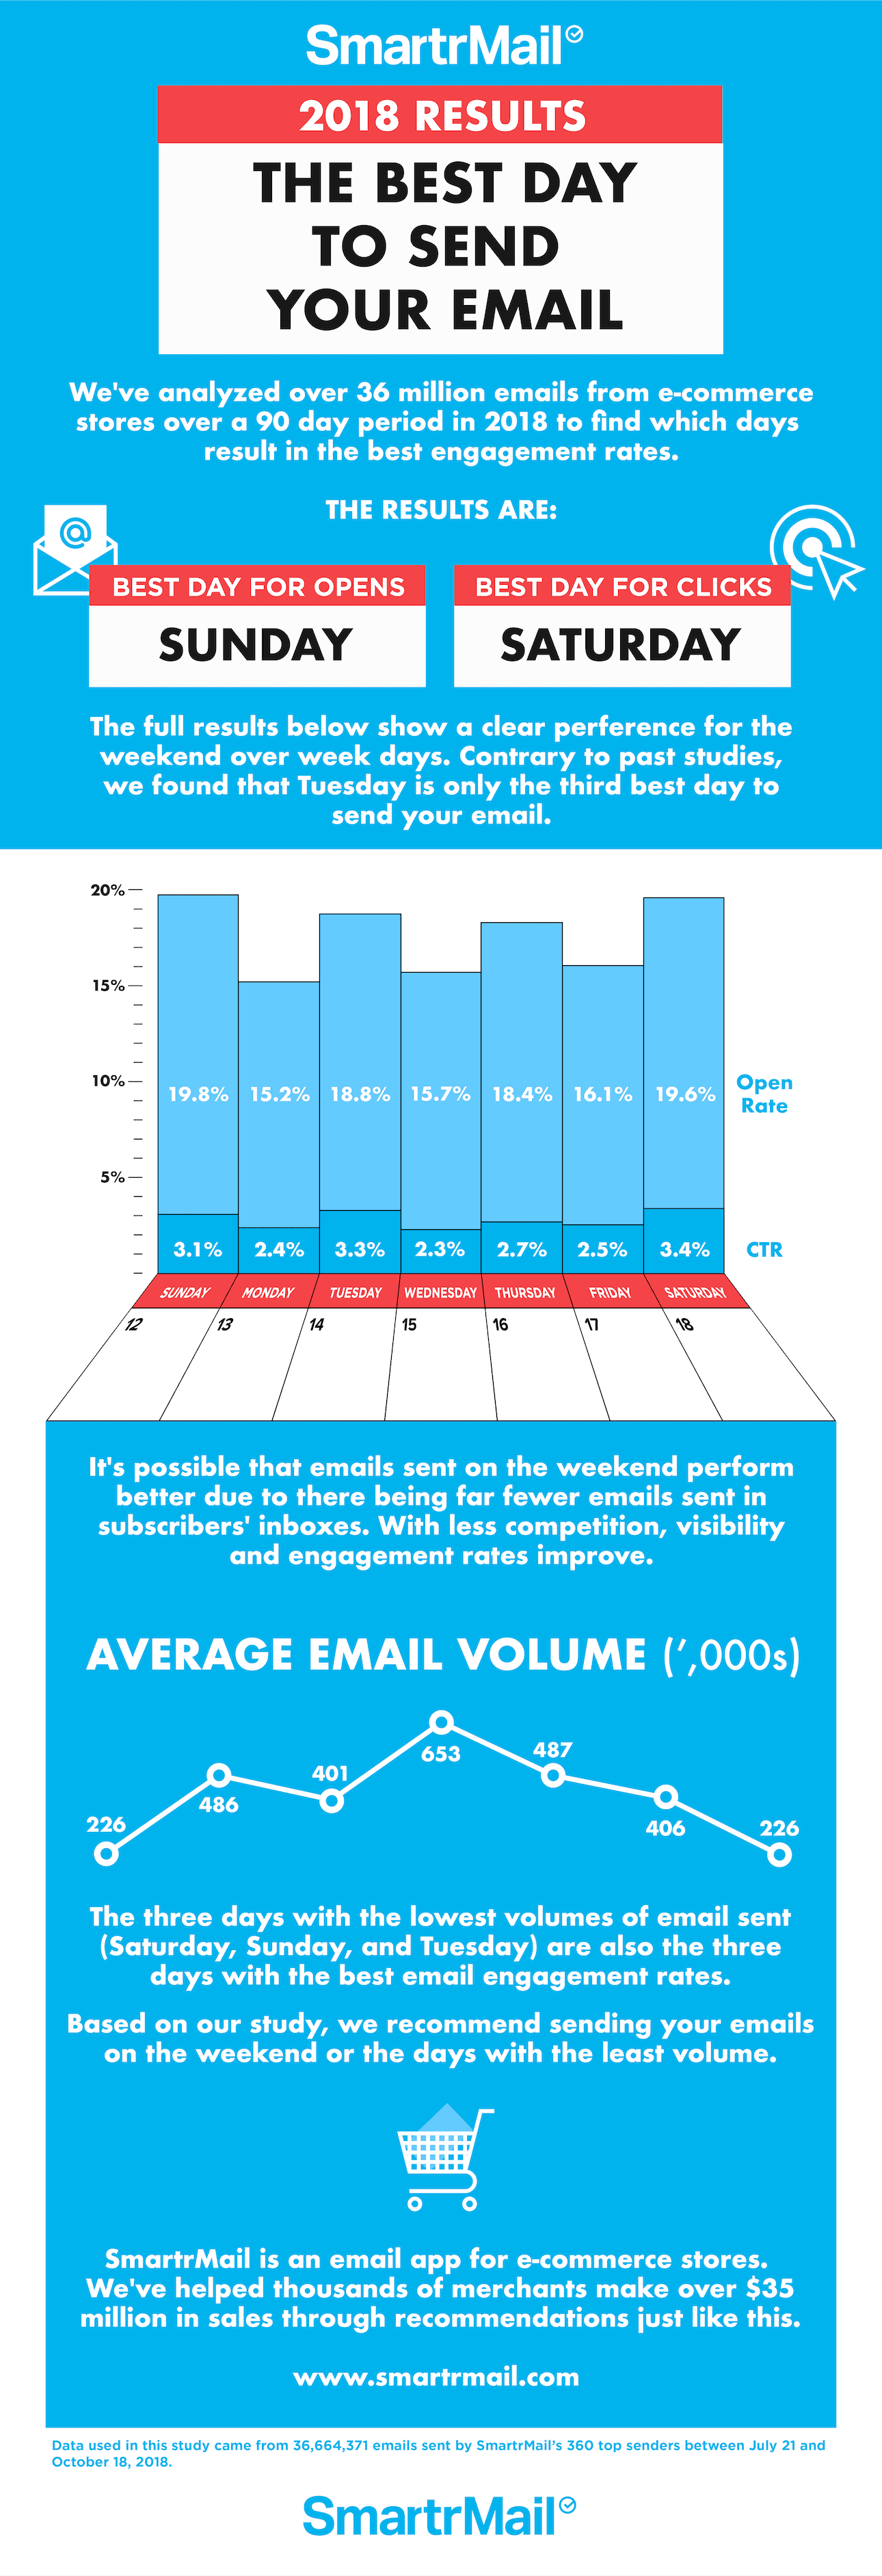 When to send your email infographic